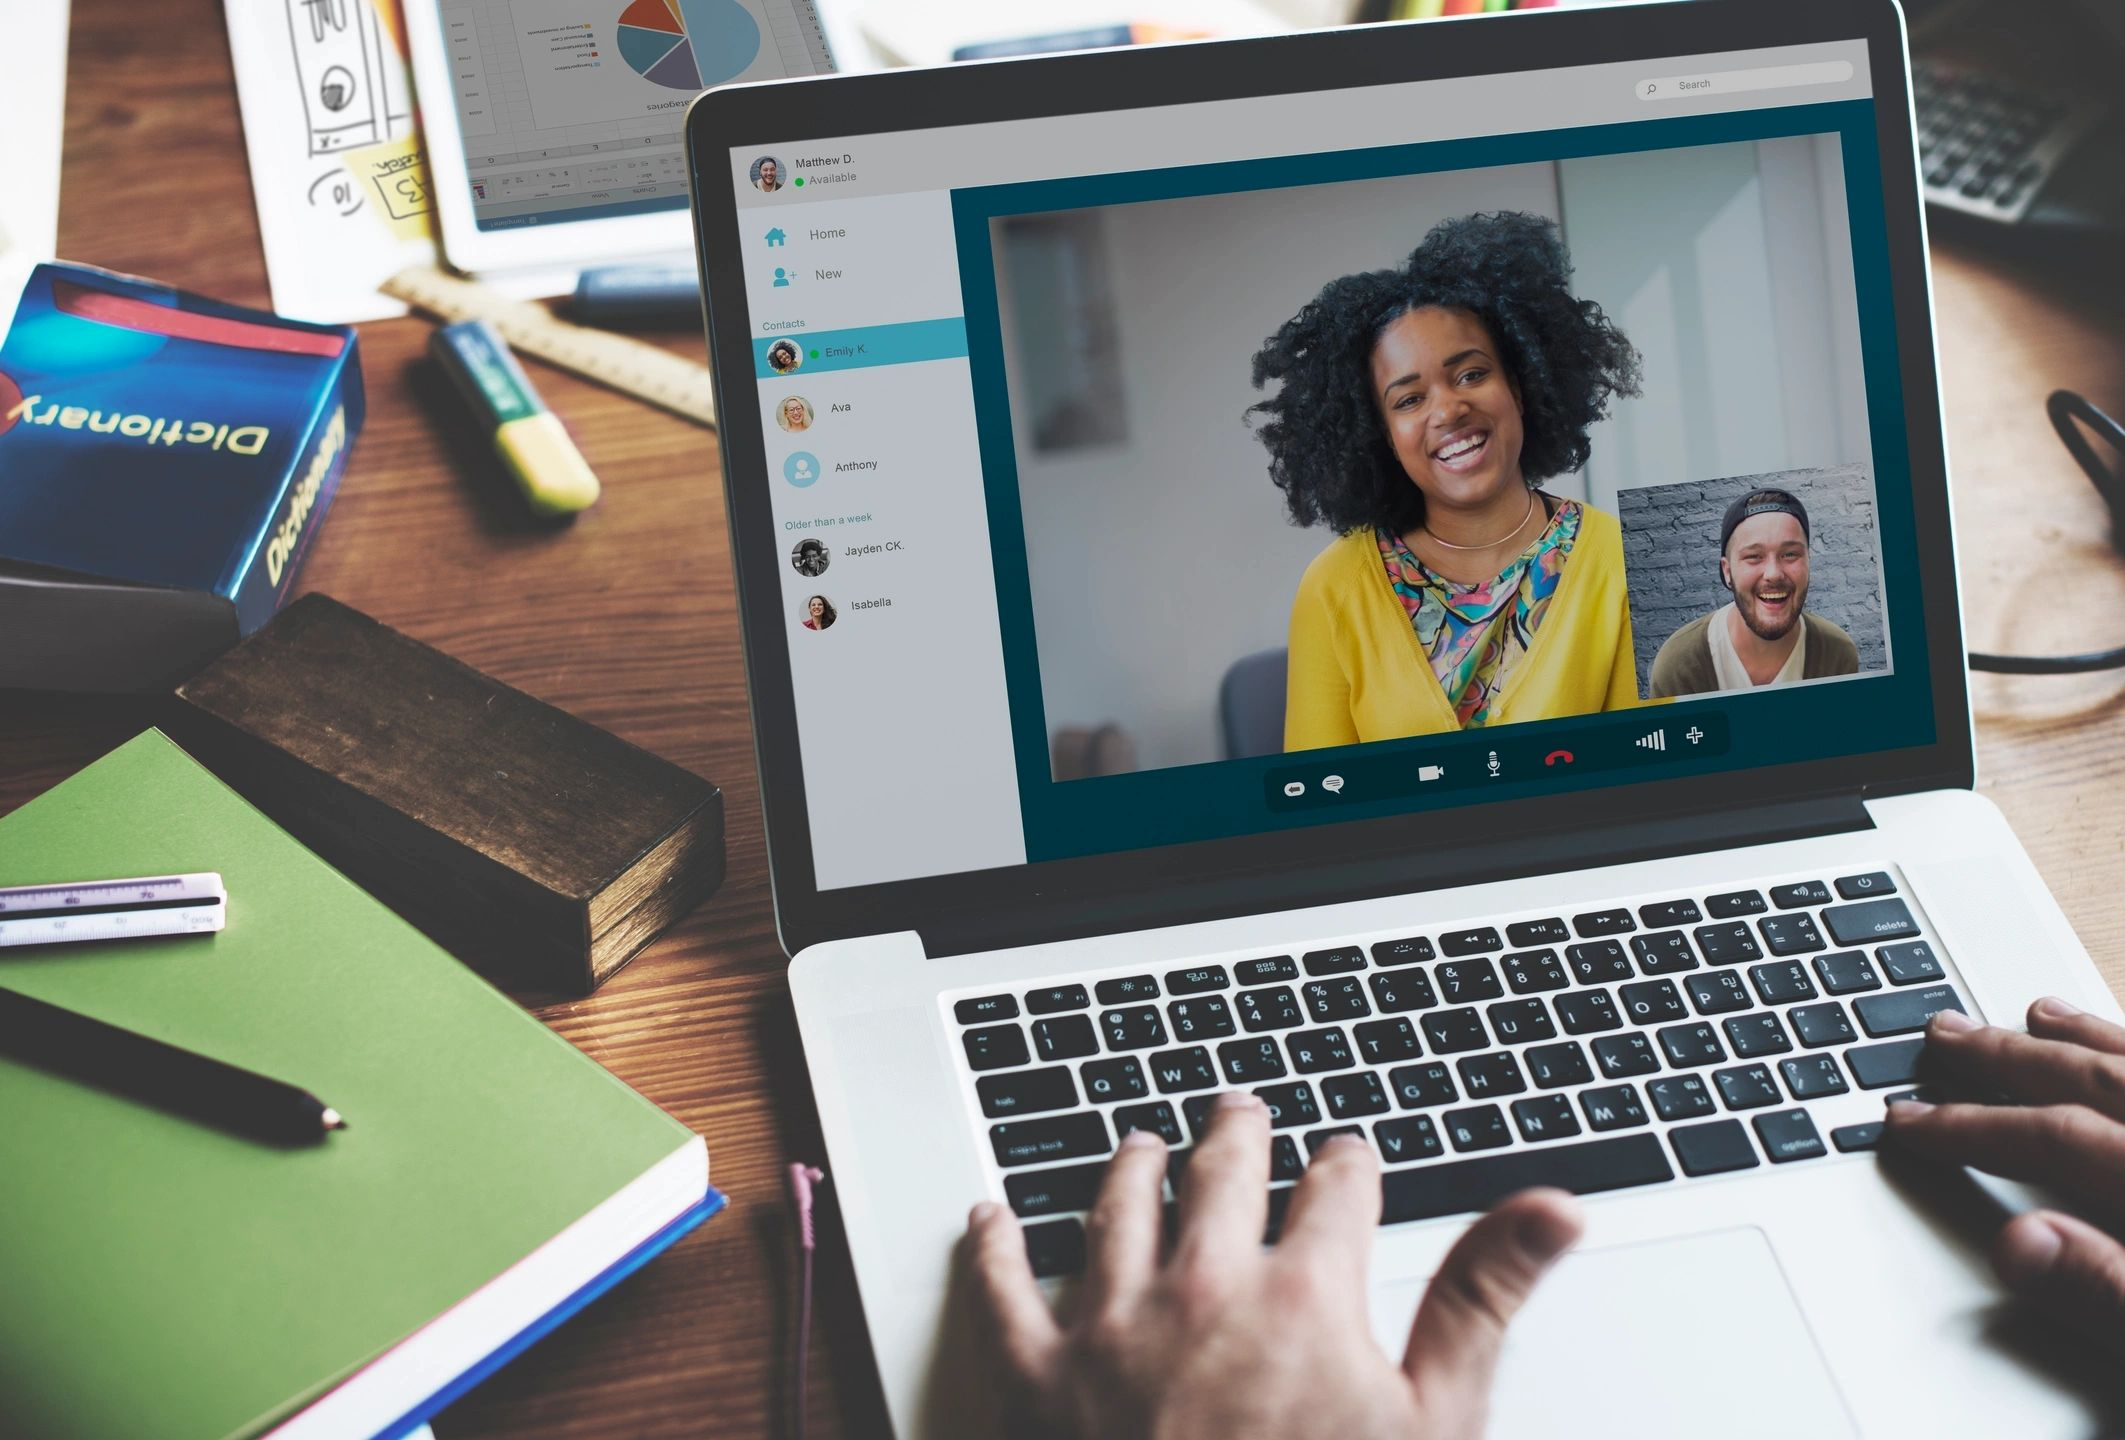 Zooming Over Geographic Boundaries: How Teleconferencing Has Given Family Law Clients More Choices for Legal Representation